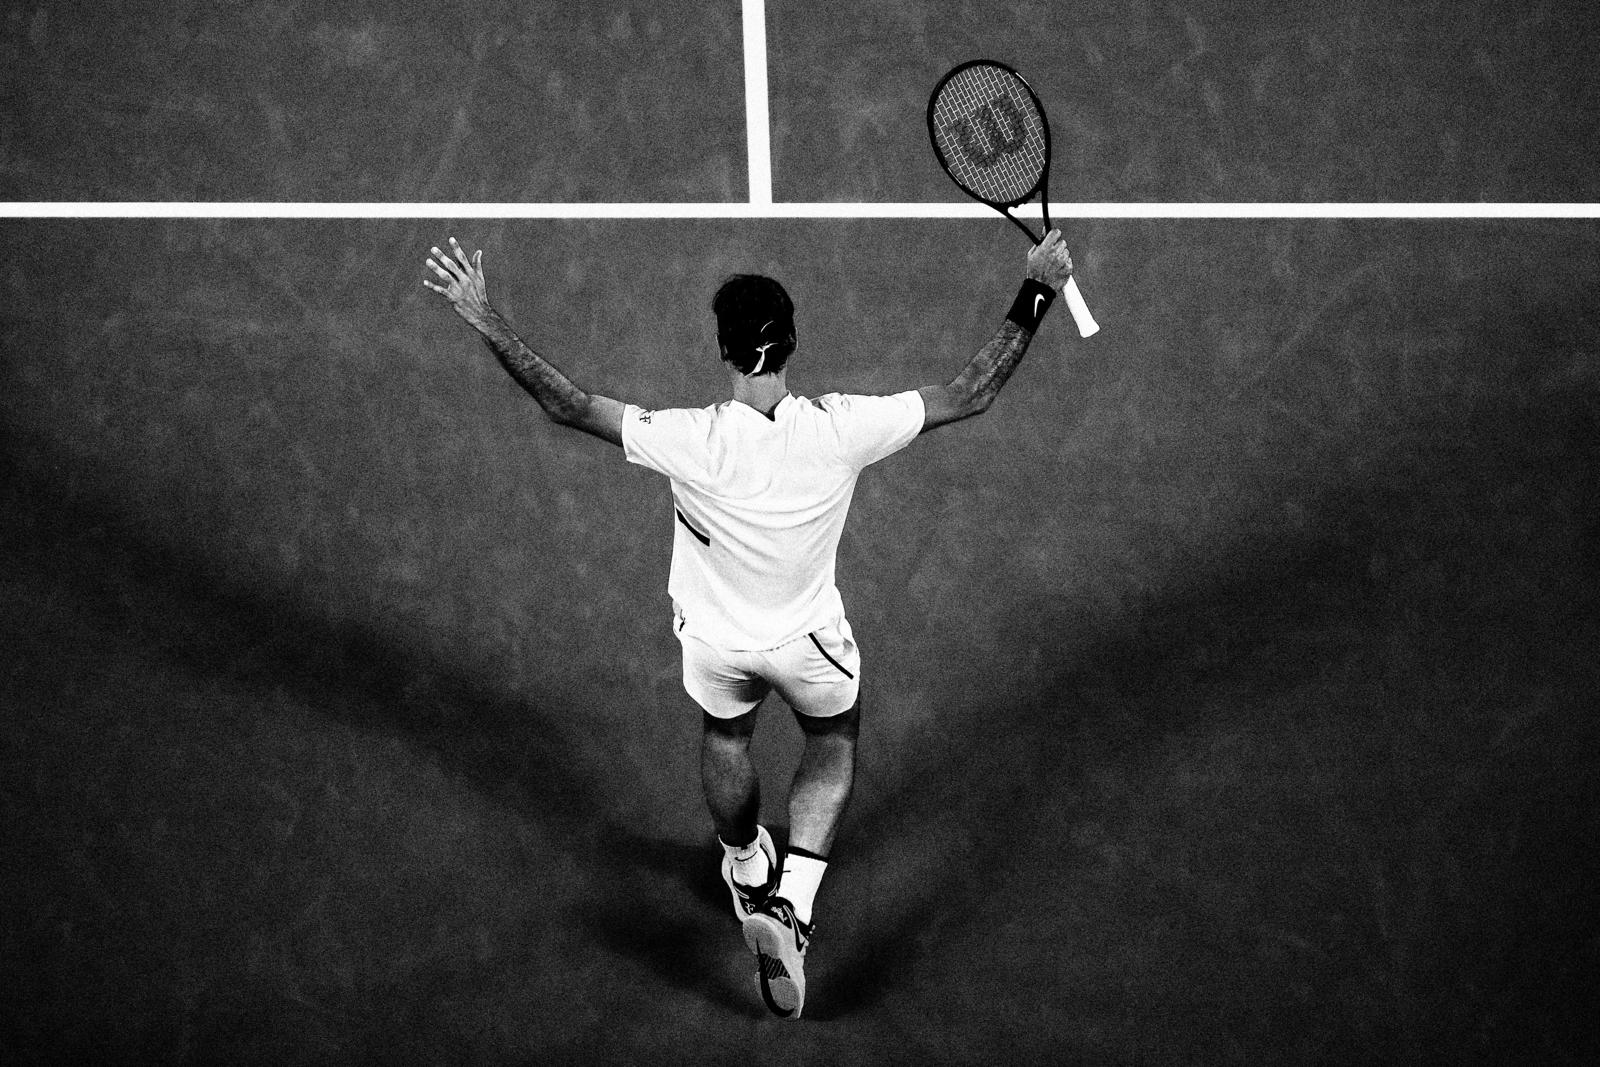 Roger Federer Wins Sixth Title In Melbourne And 20th Slam